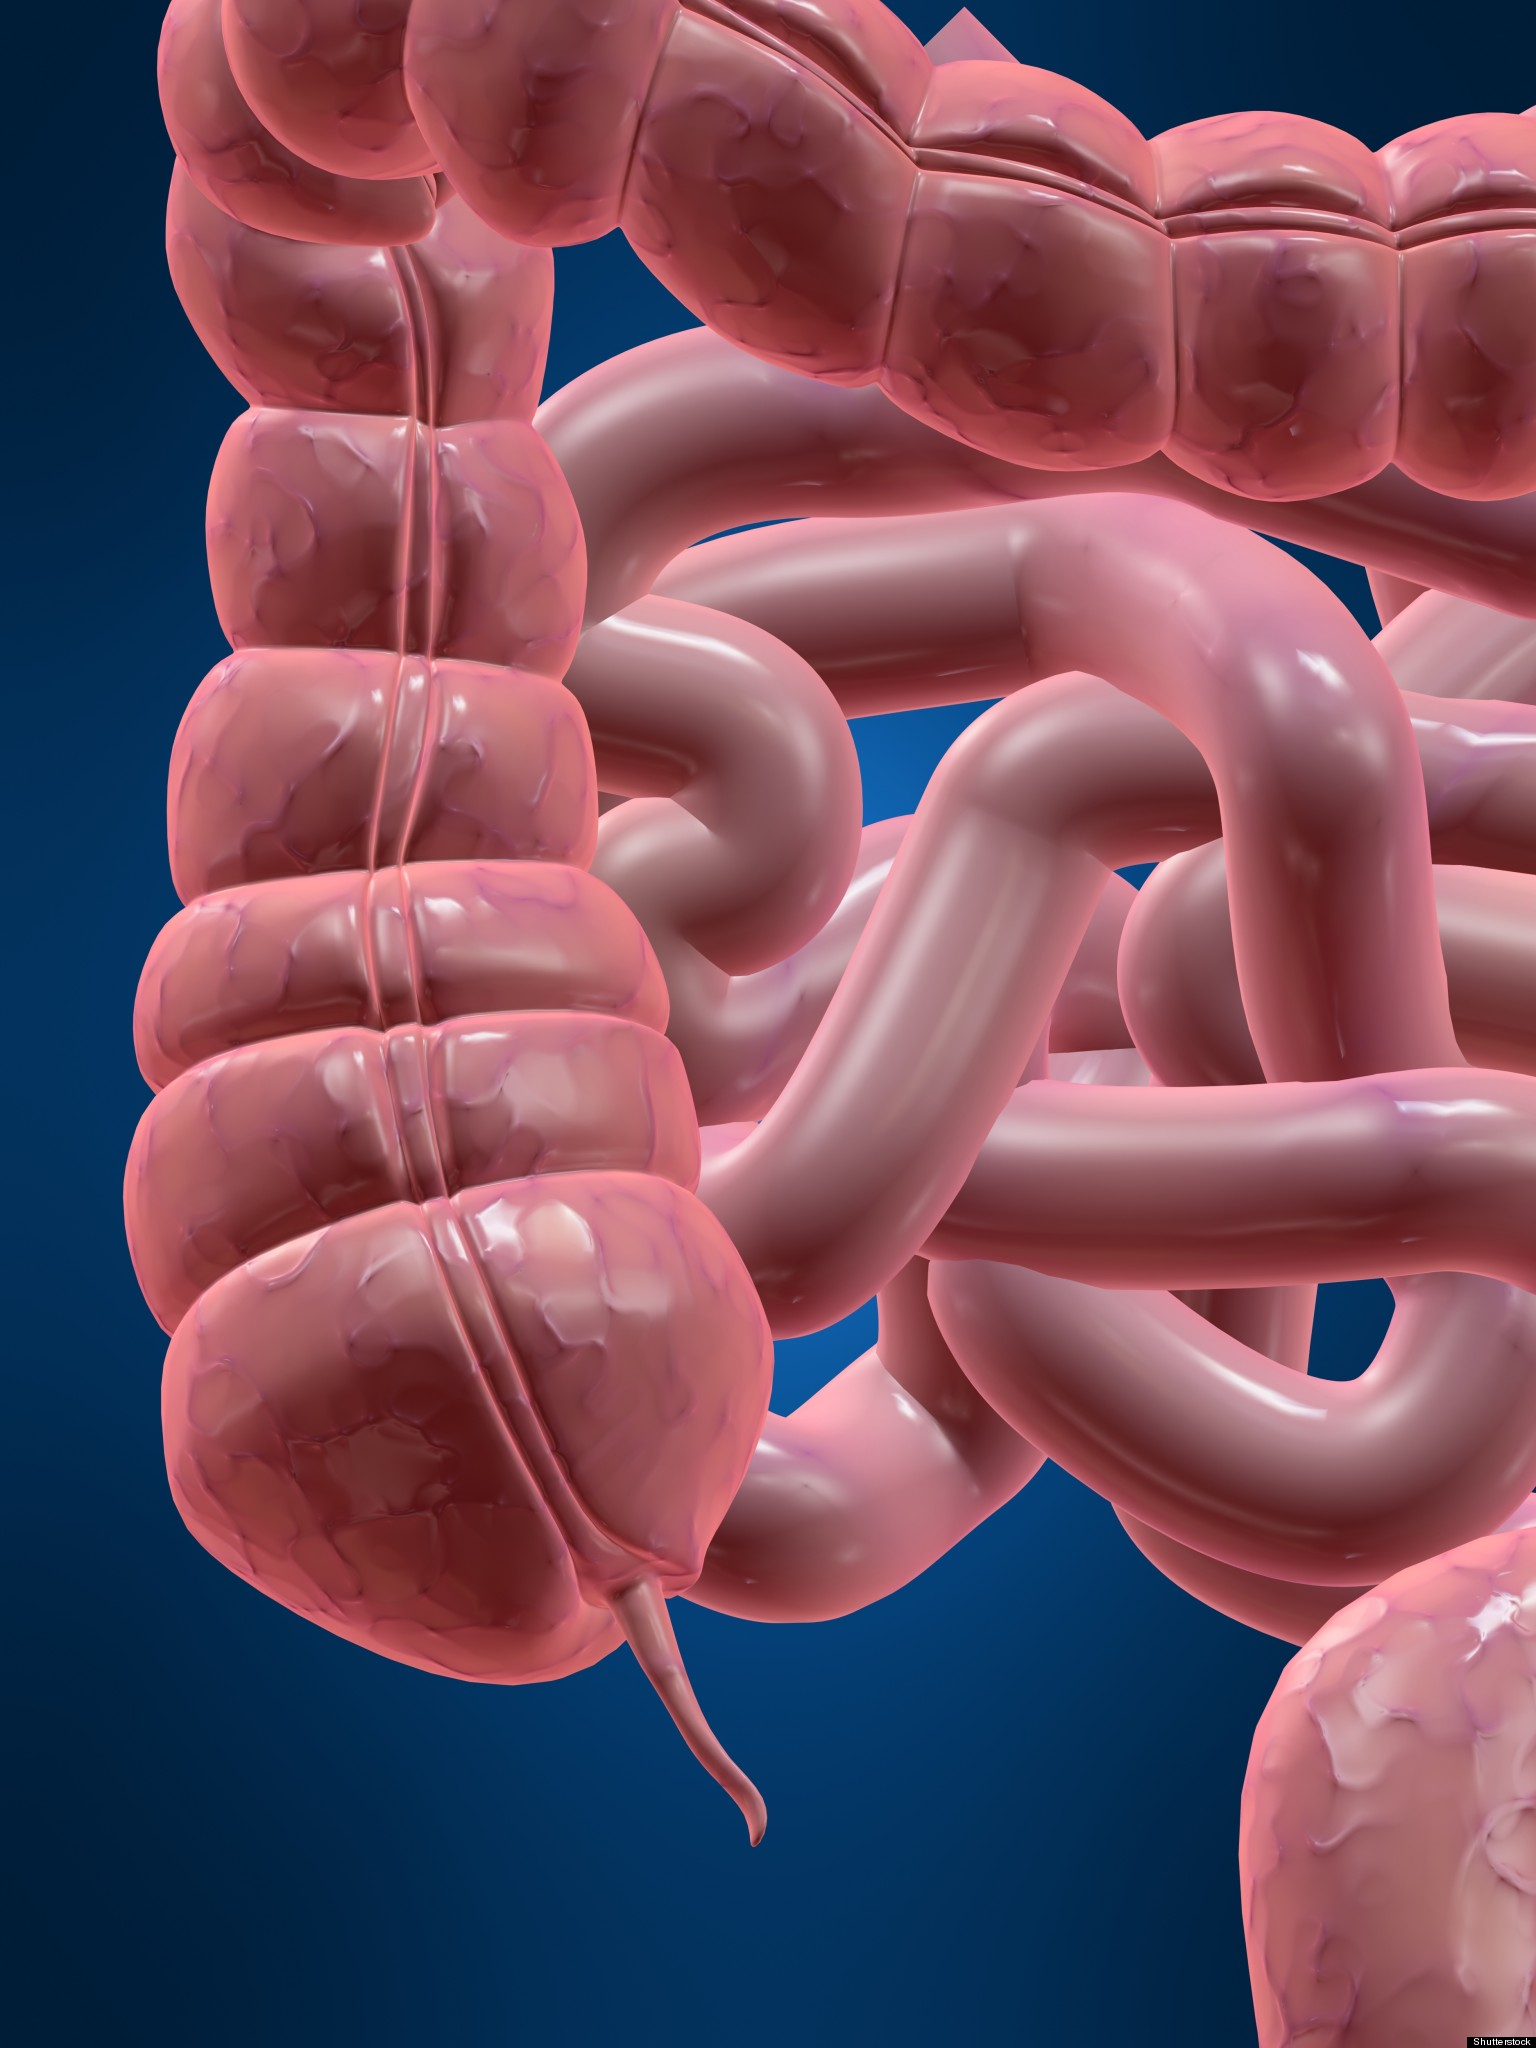 Appendix Evolved Over 30 Times, May Perform Useful Function ...